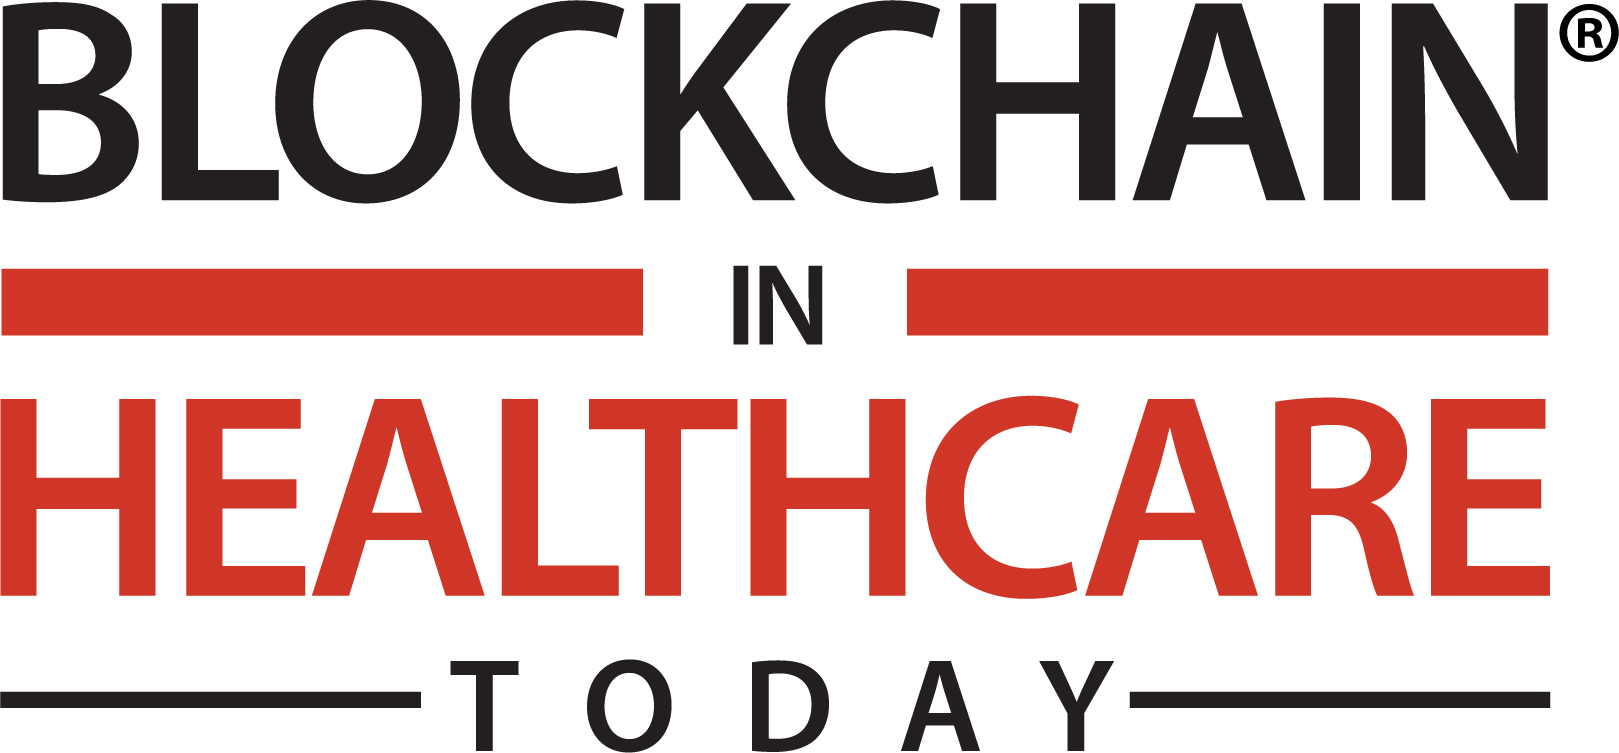 Introducing Blockchain in Healthcare Today – the newest open access journal collection on ScienceOpen!